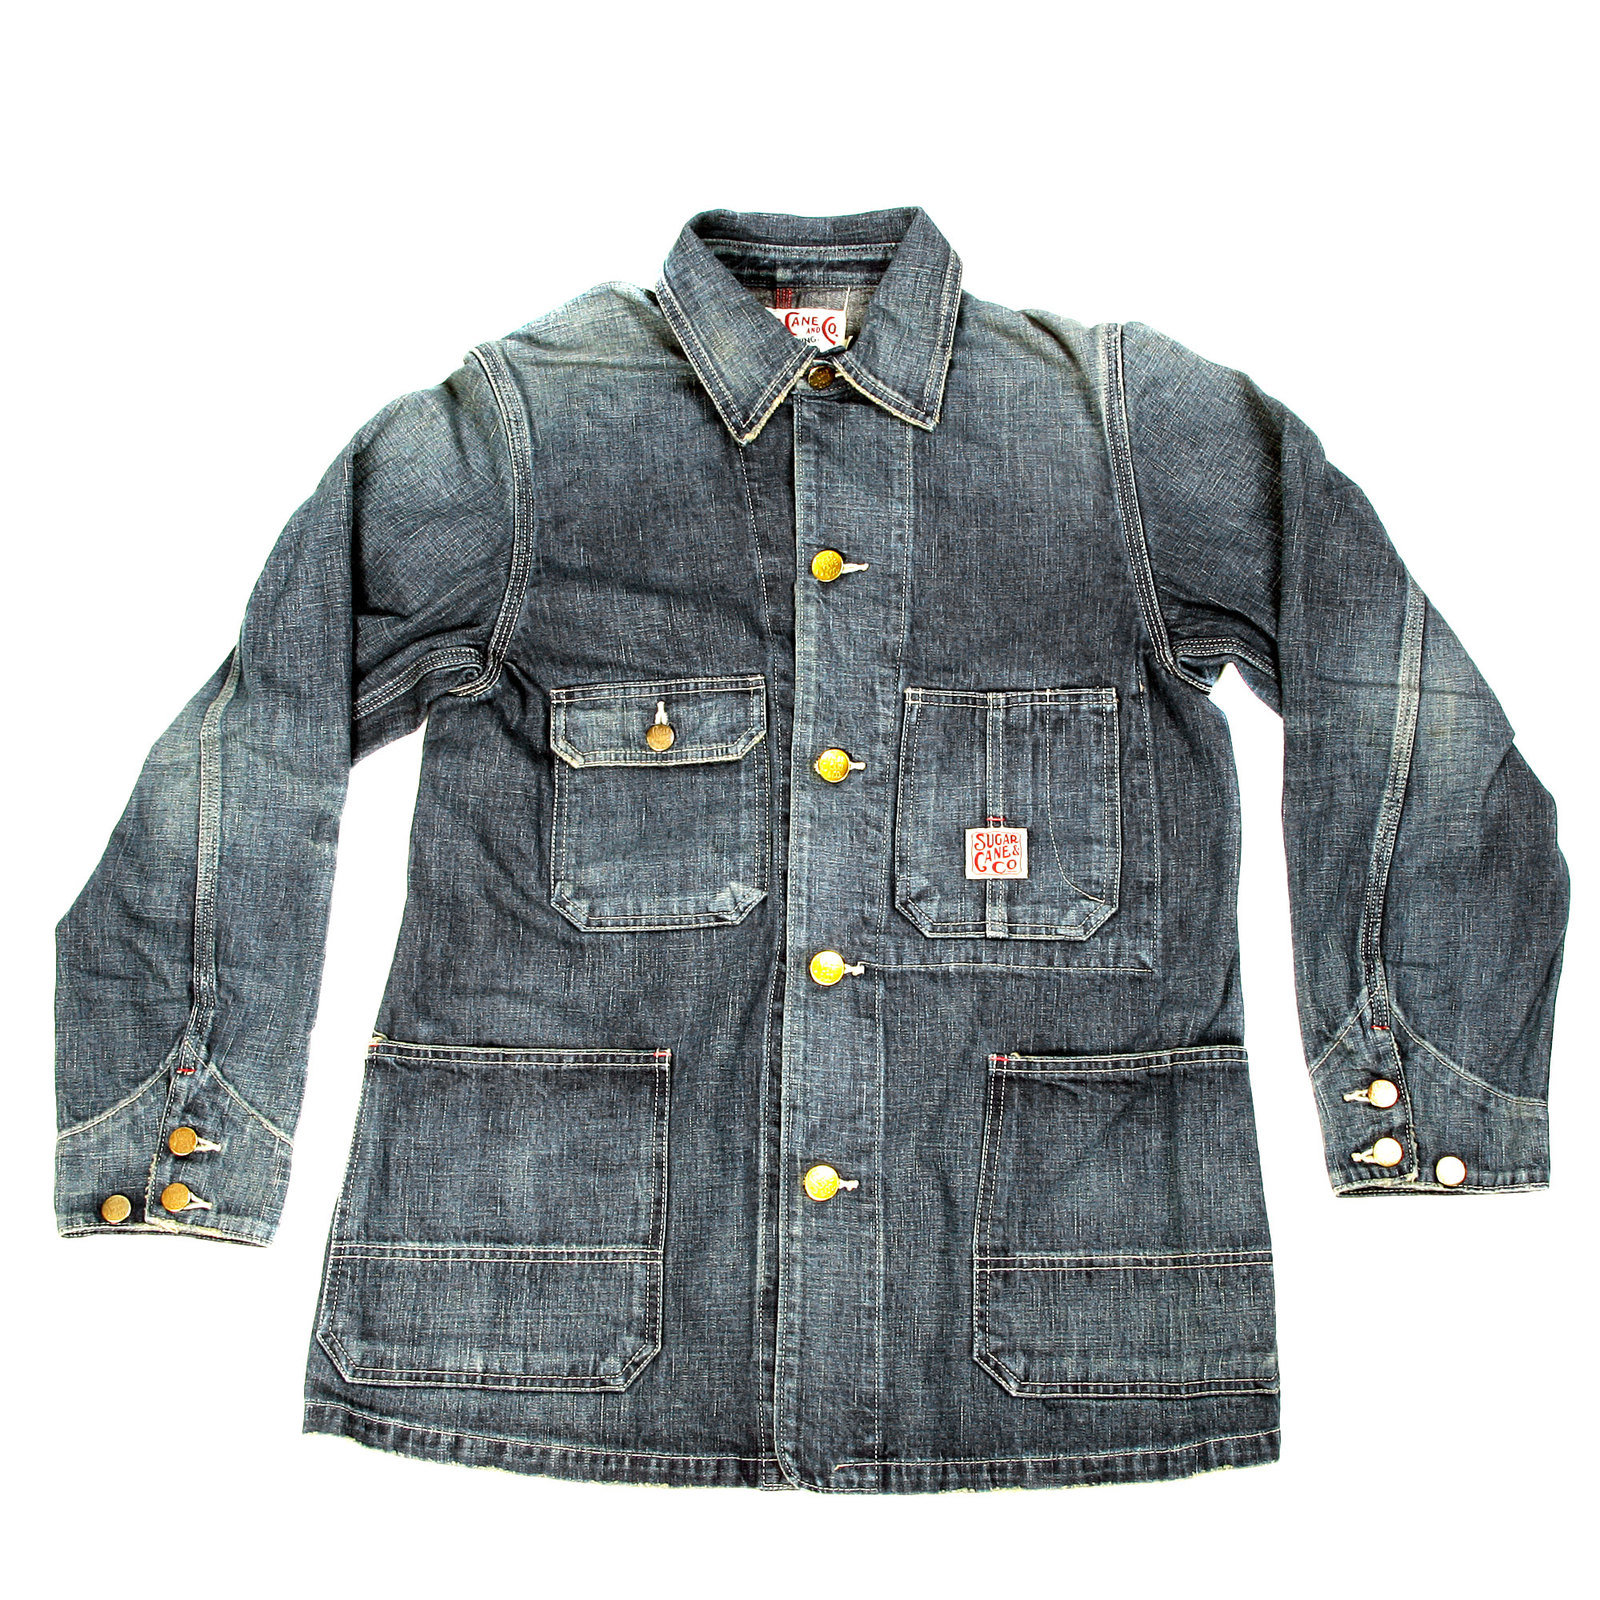 Cool and Trendy Denim Jackets for Men by Sugarcane UK